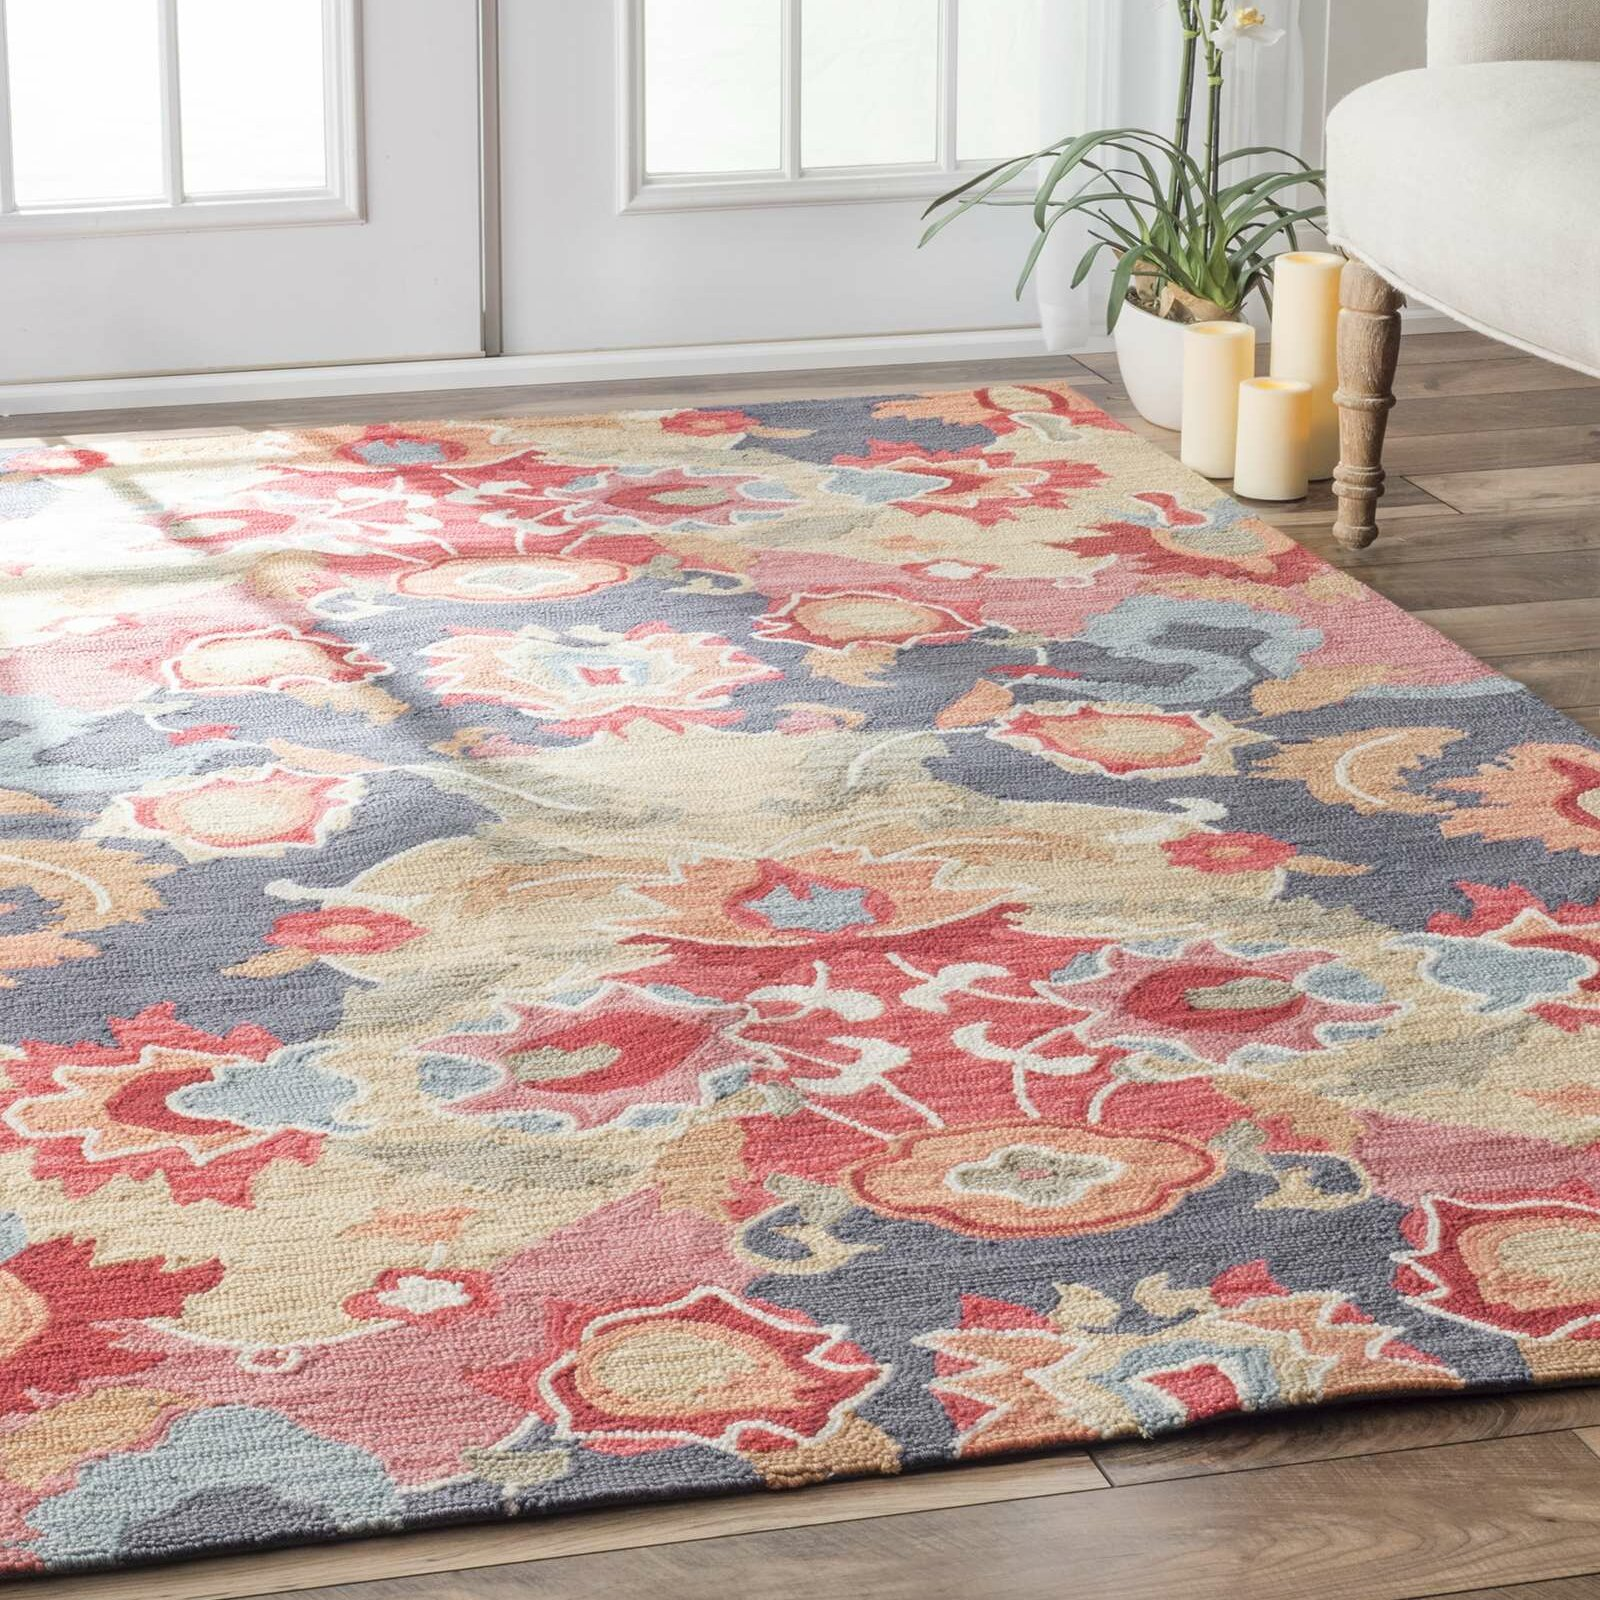 Woolrich Blue And White Floral Rug: Jean Red & Blue Floral Hand-Tufted Area Rug & Reviews